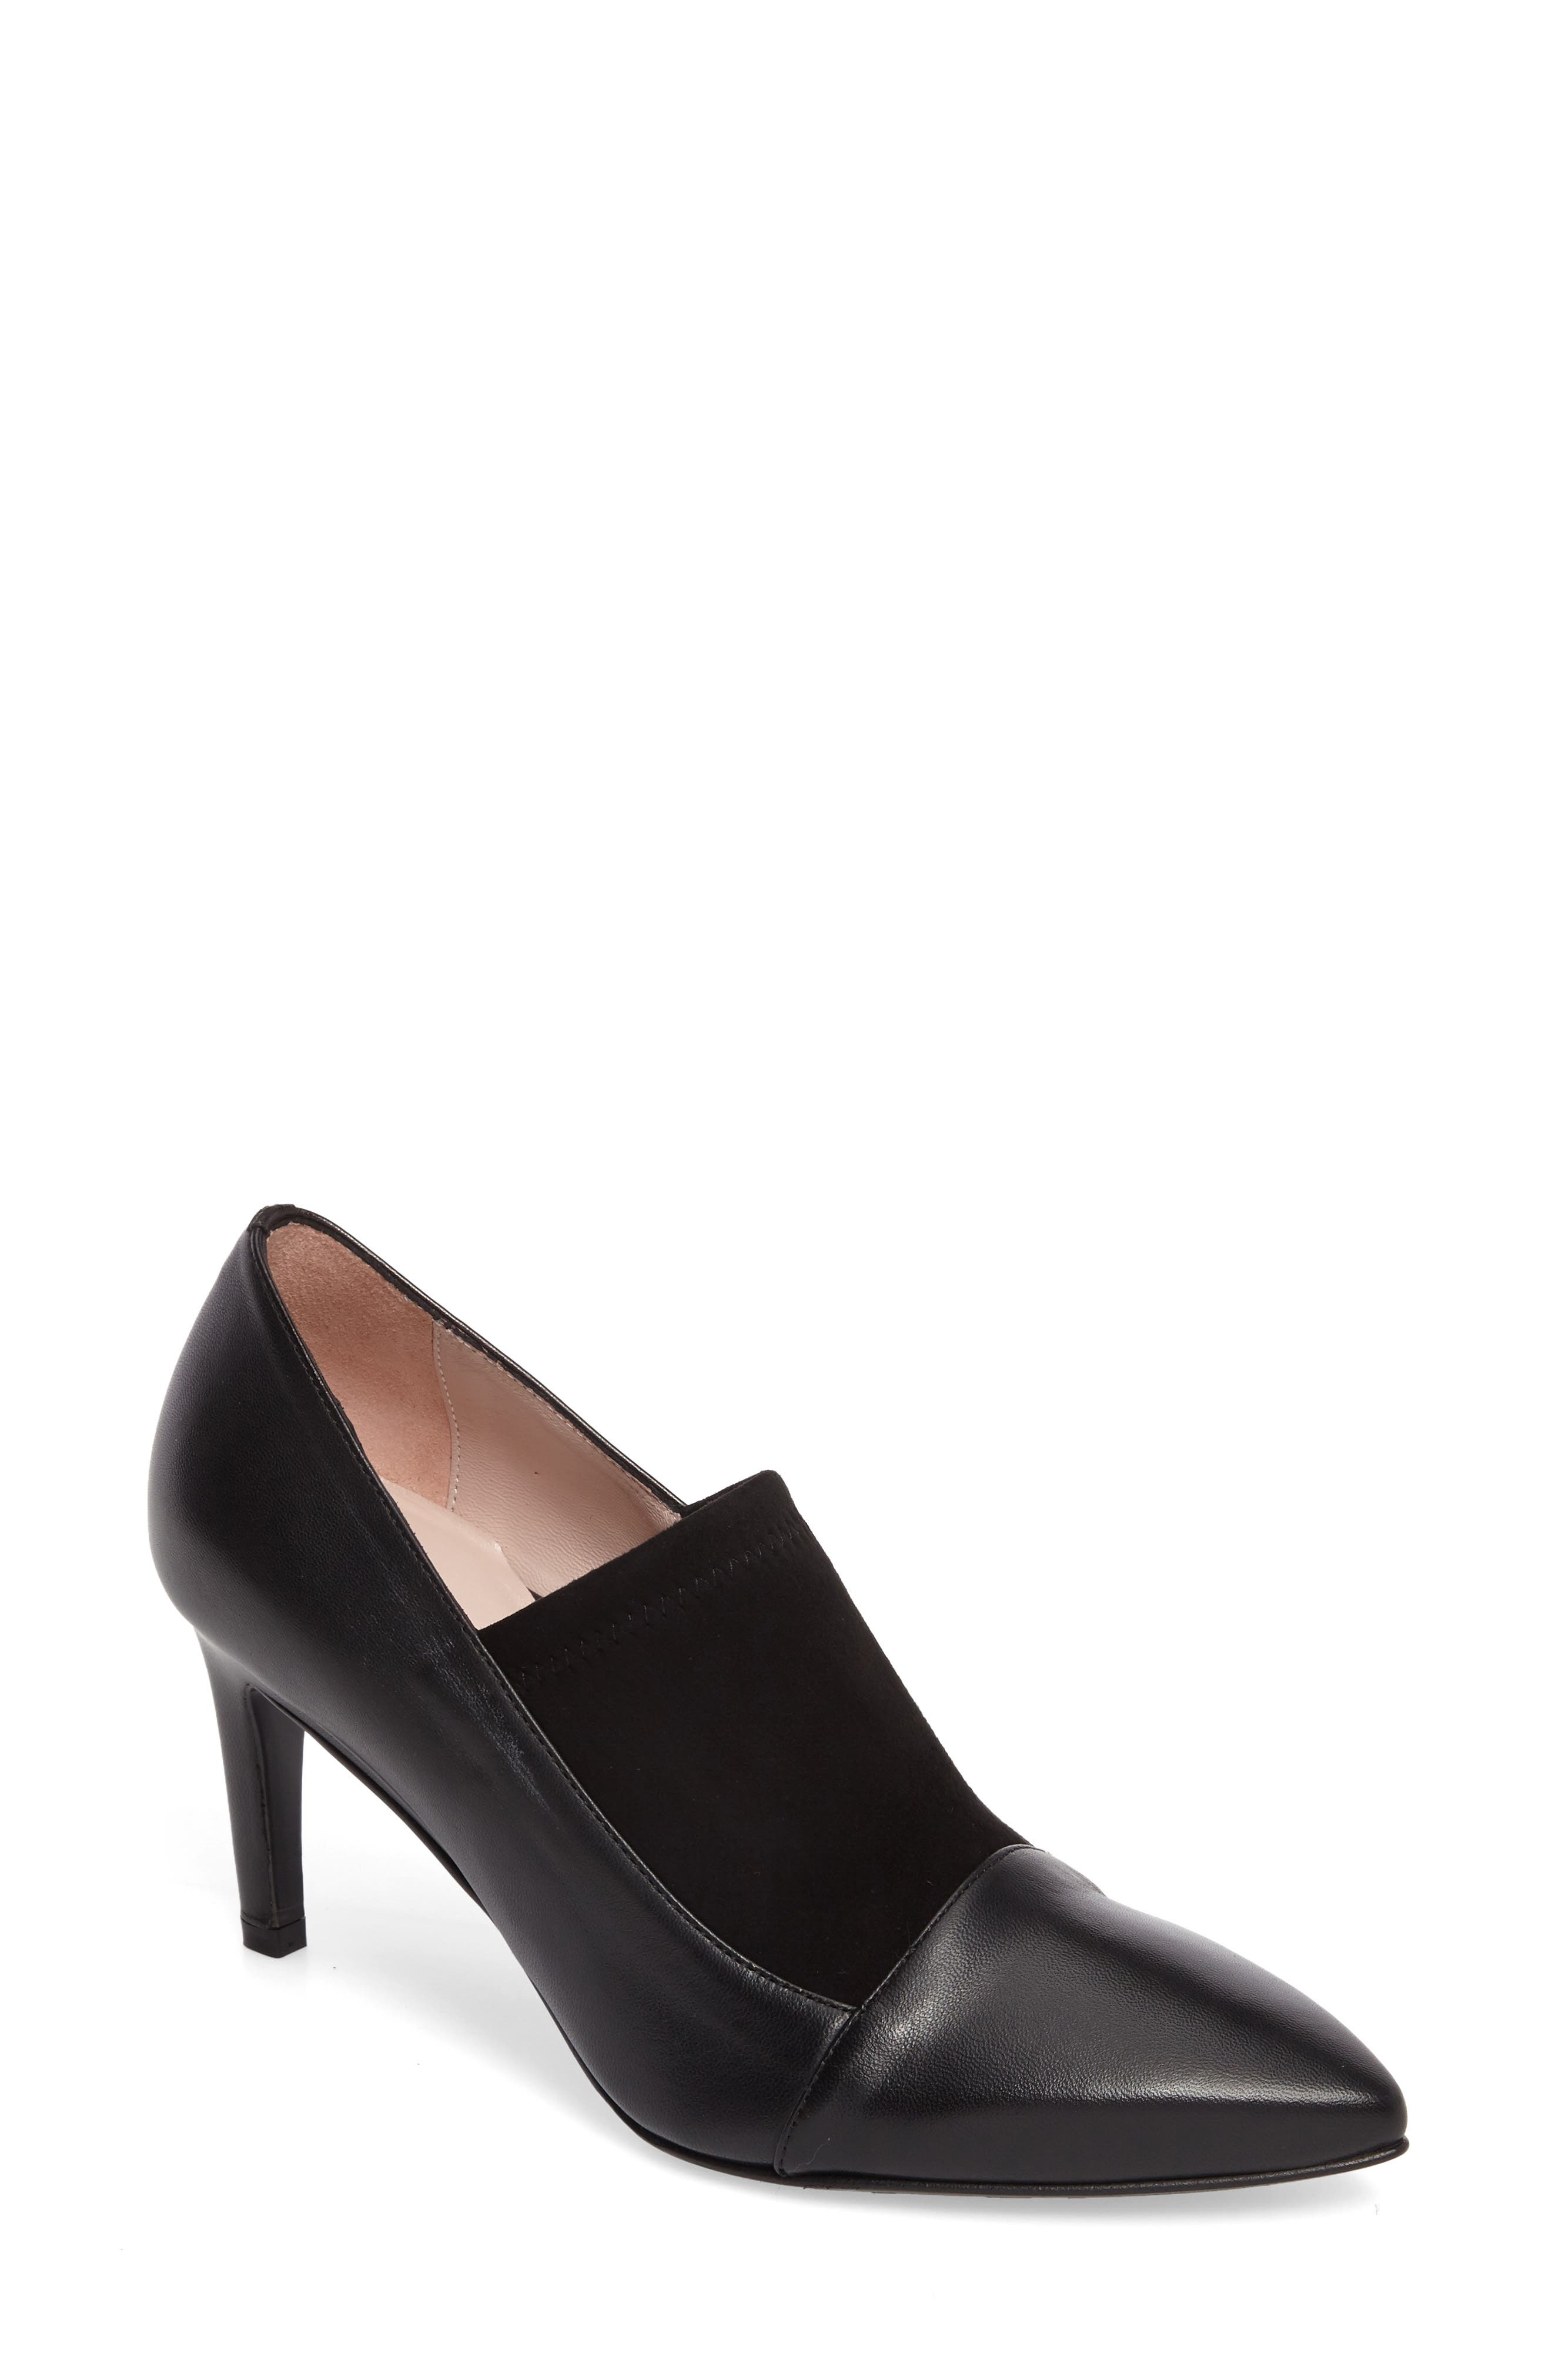 Ghita Pointy Toe Pump,                             Main thumbnail 1, color,                             Black Leather